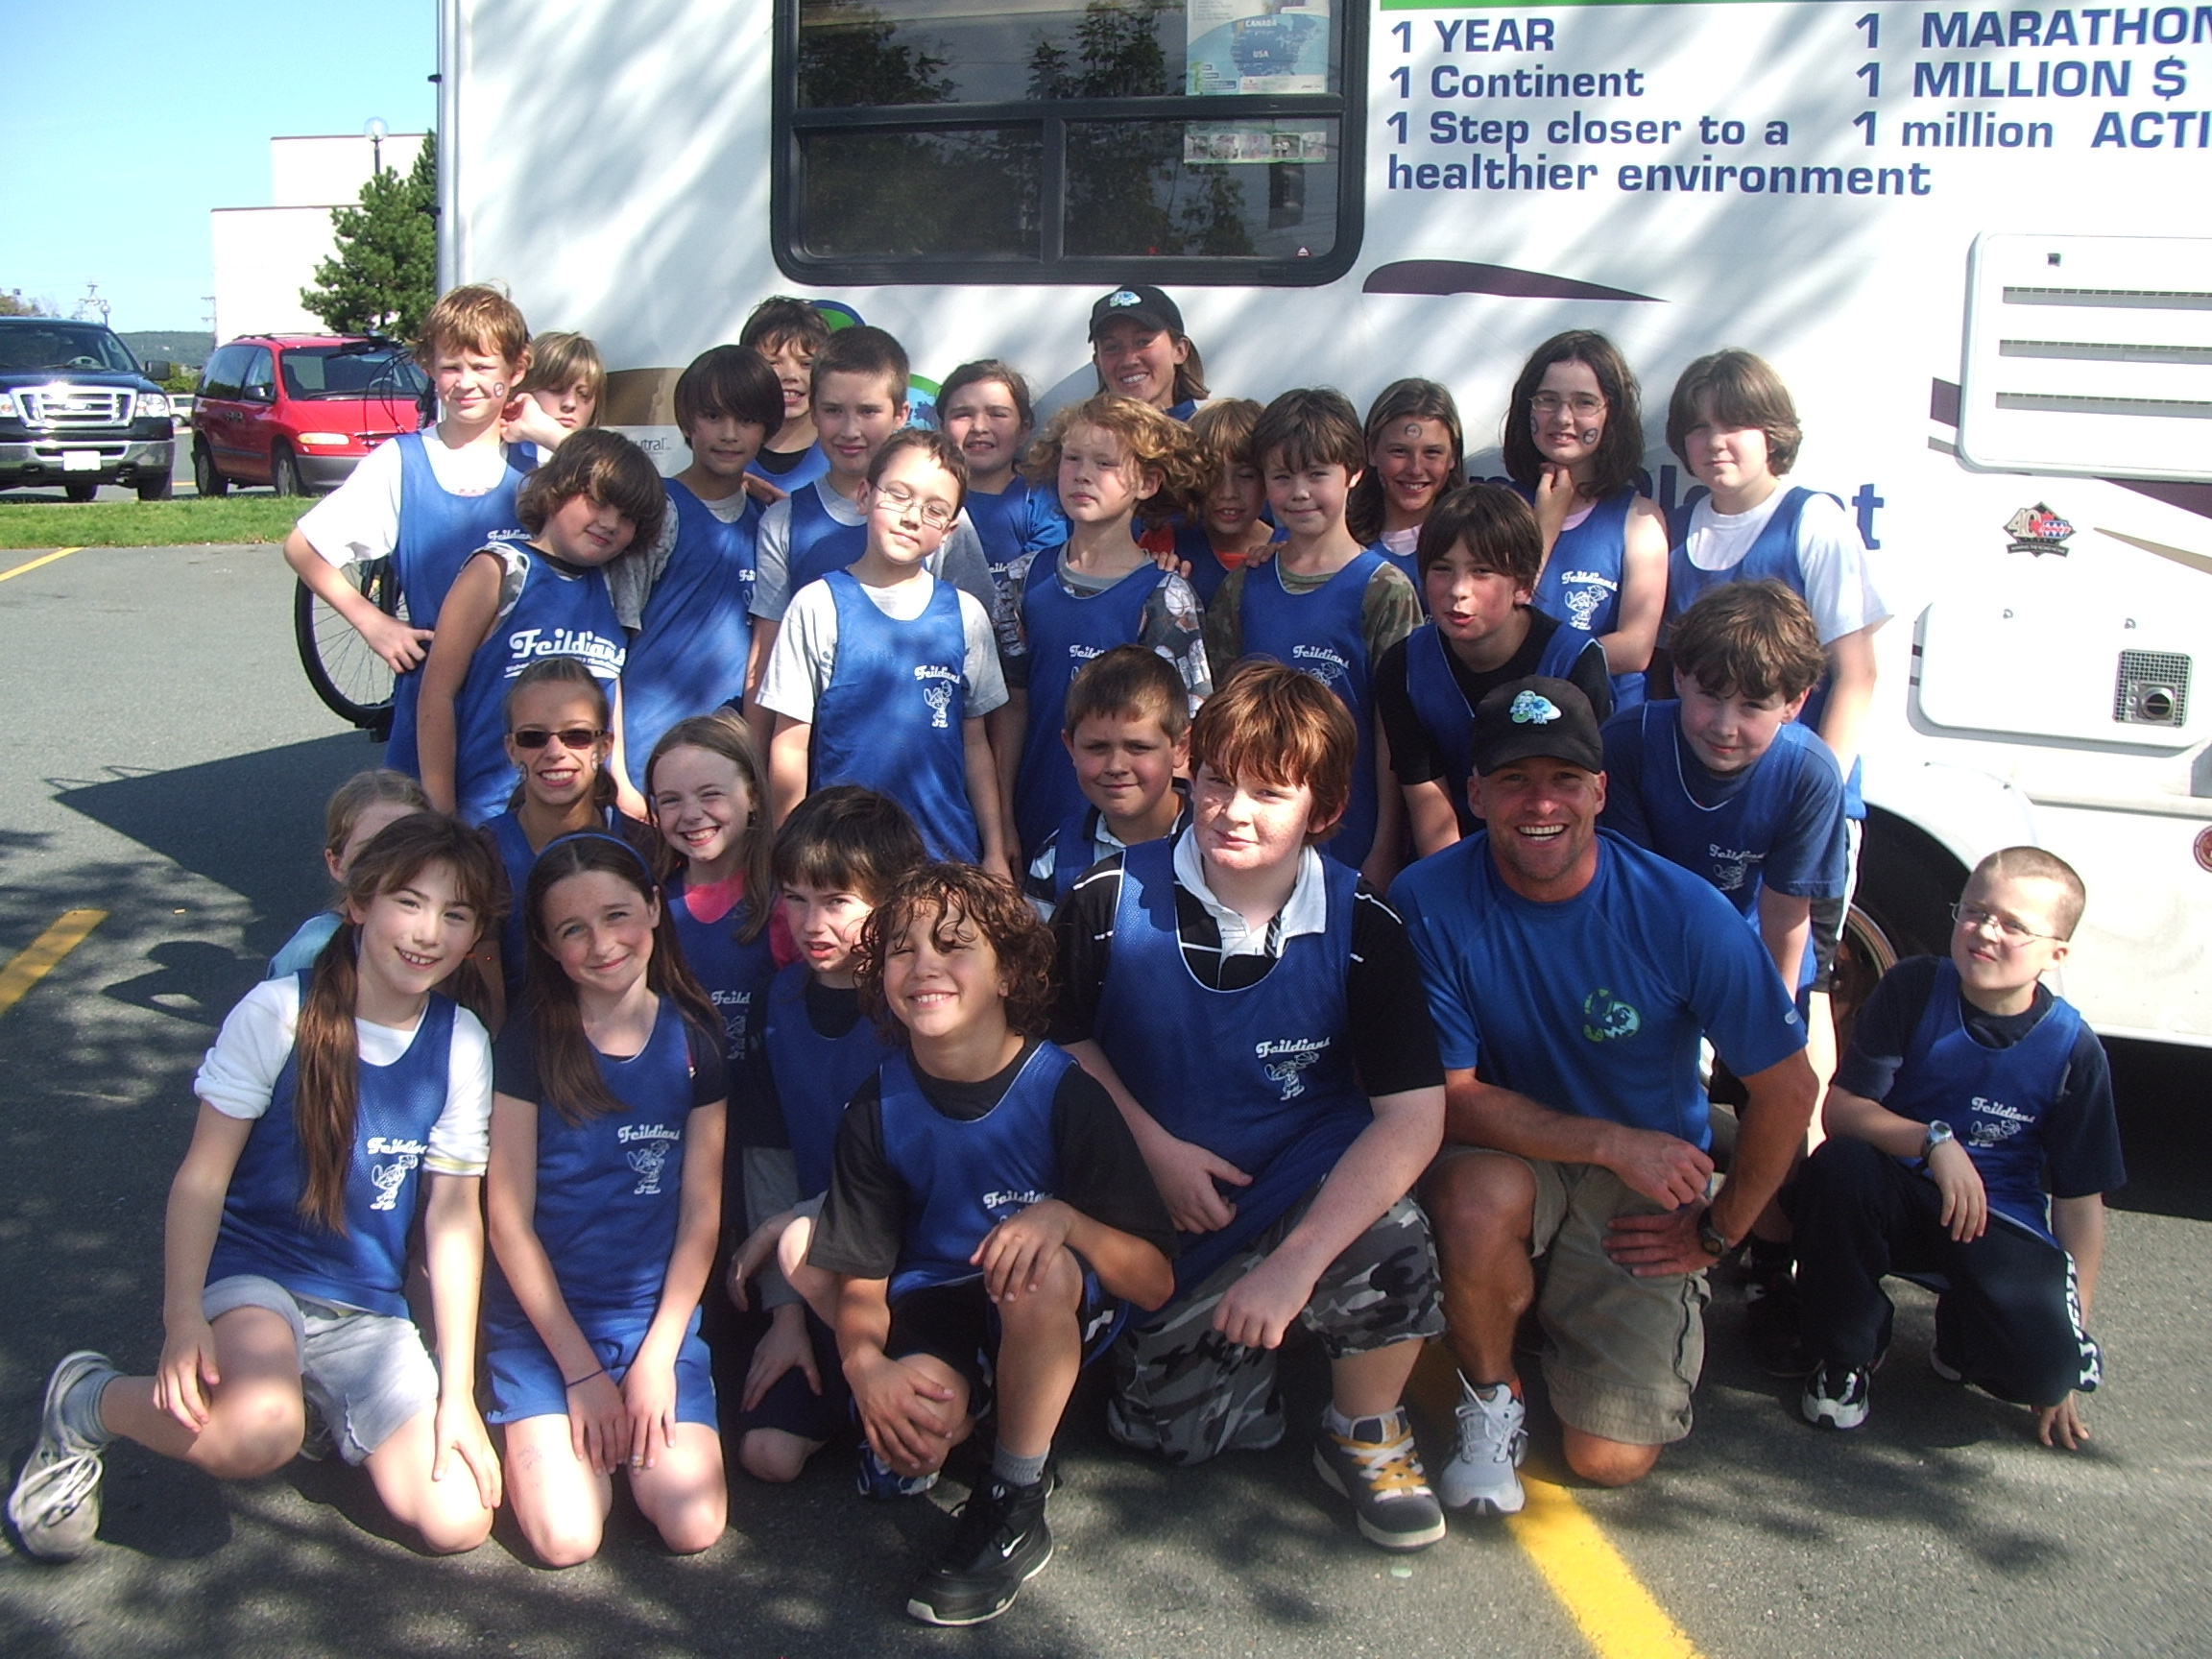 Steph & Matt hang with the Bishop Field School runners before running to the school for their presentation!